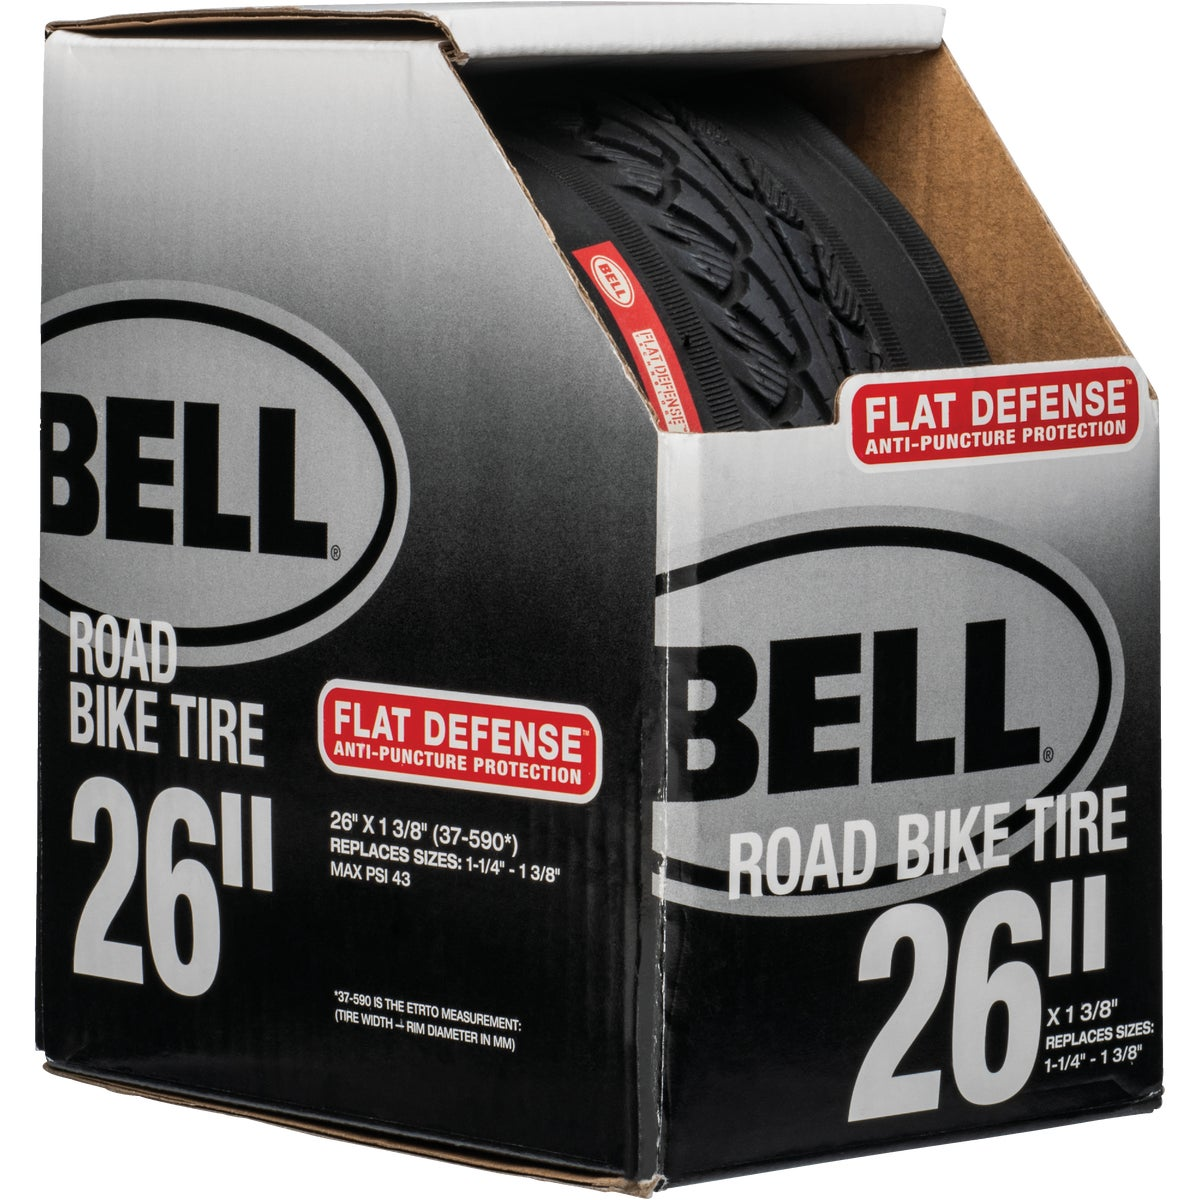 "26"" ROAD BIKE TIRE - 7014729 by Bell Sports"